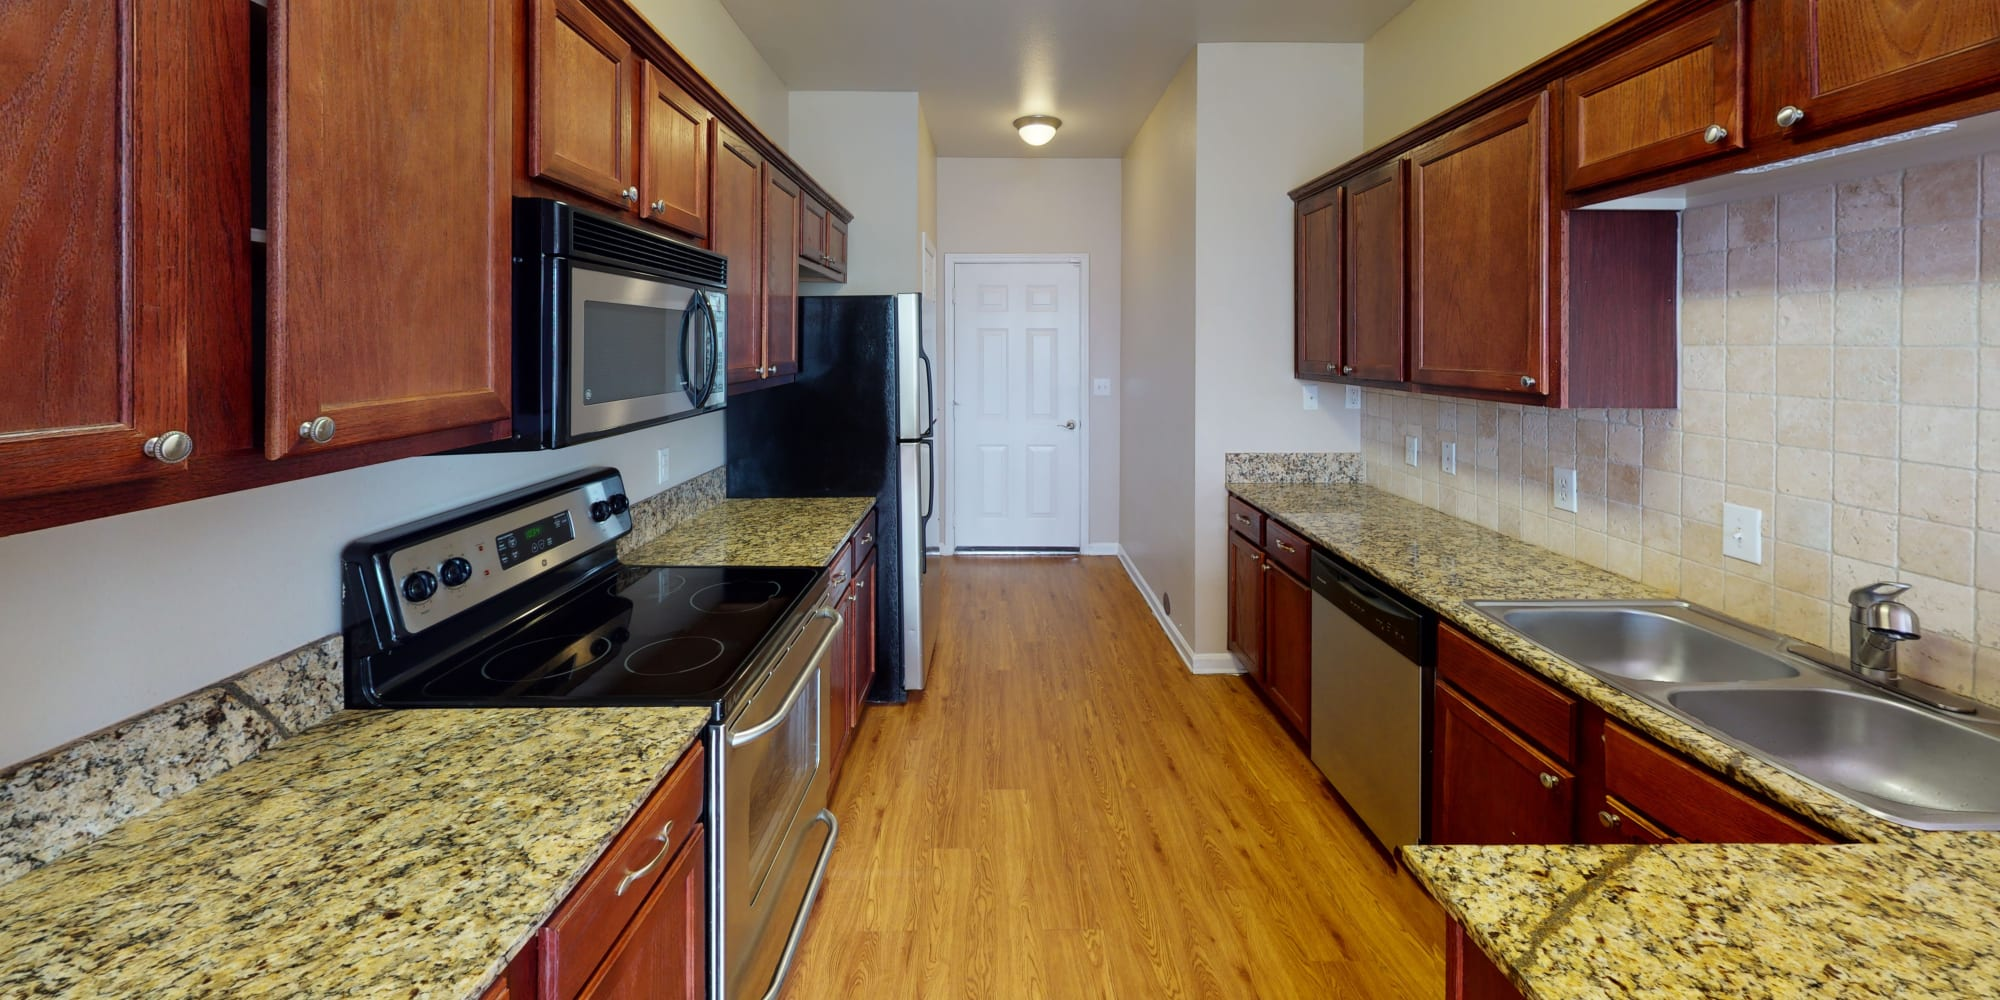 Luxury apartments at Oaks Estates of Coppell in Coppell, Texas